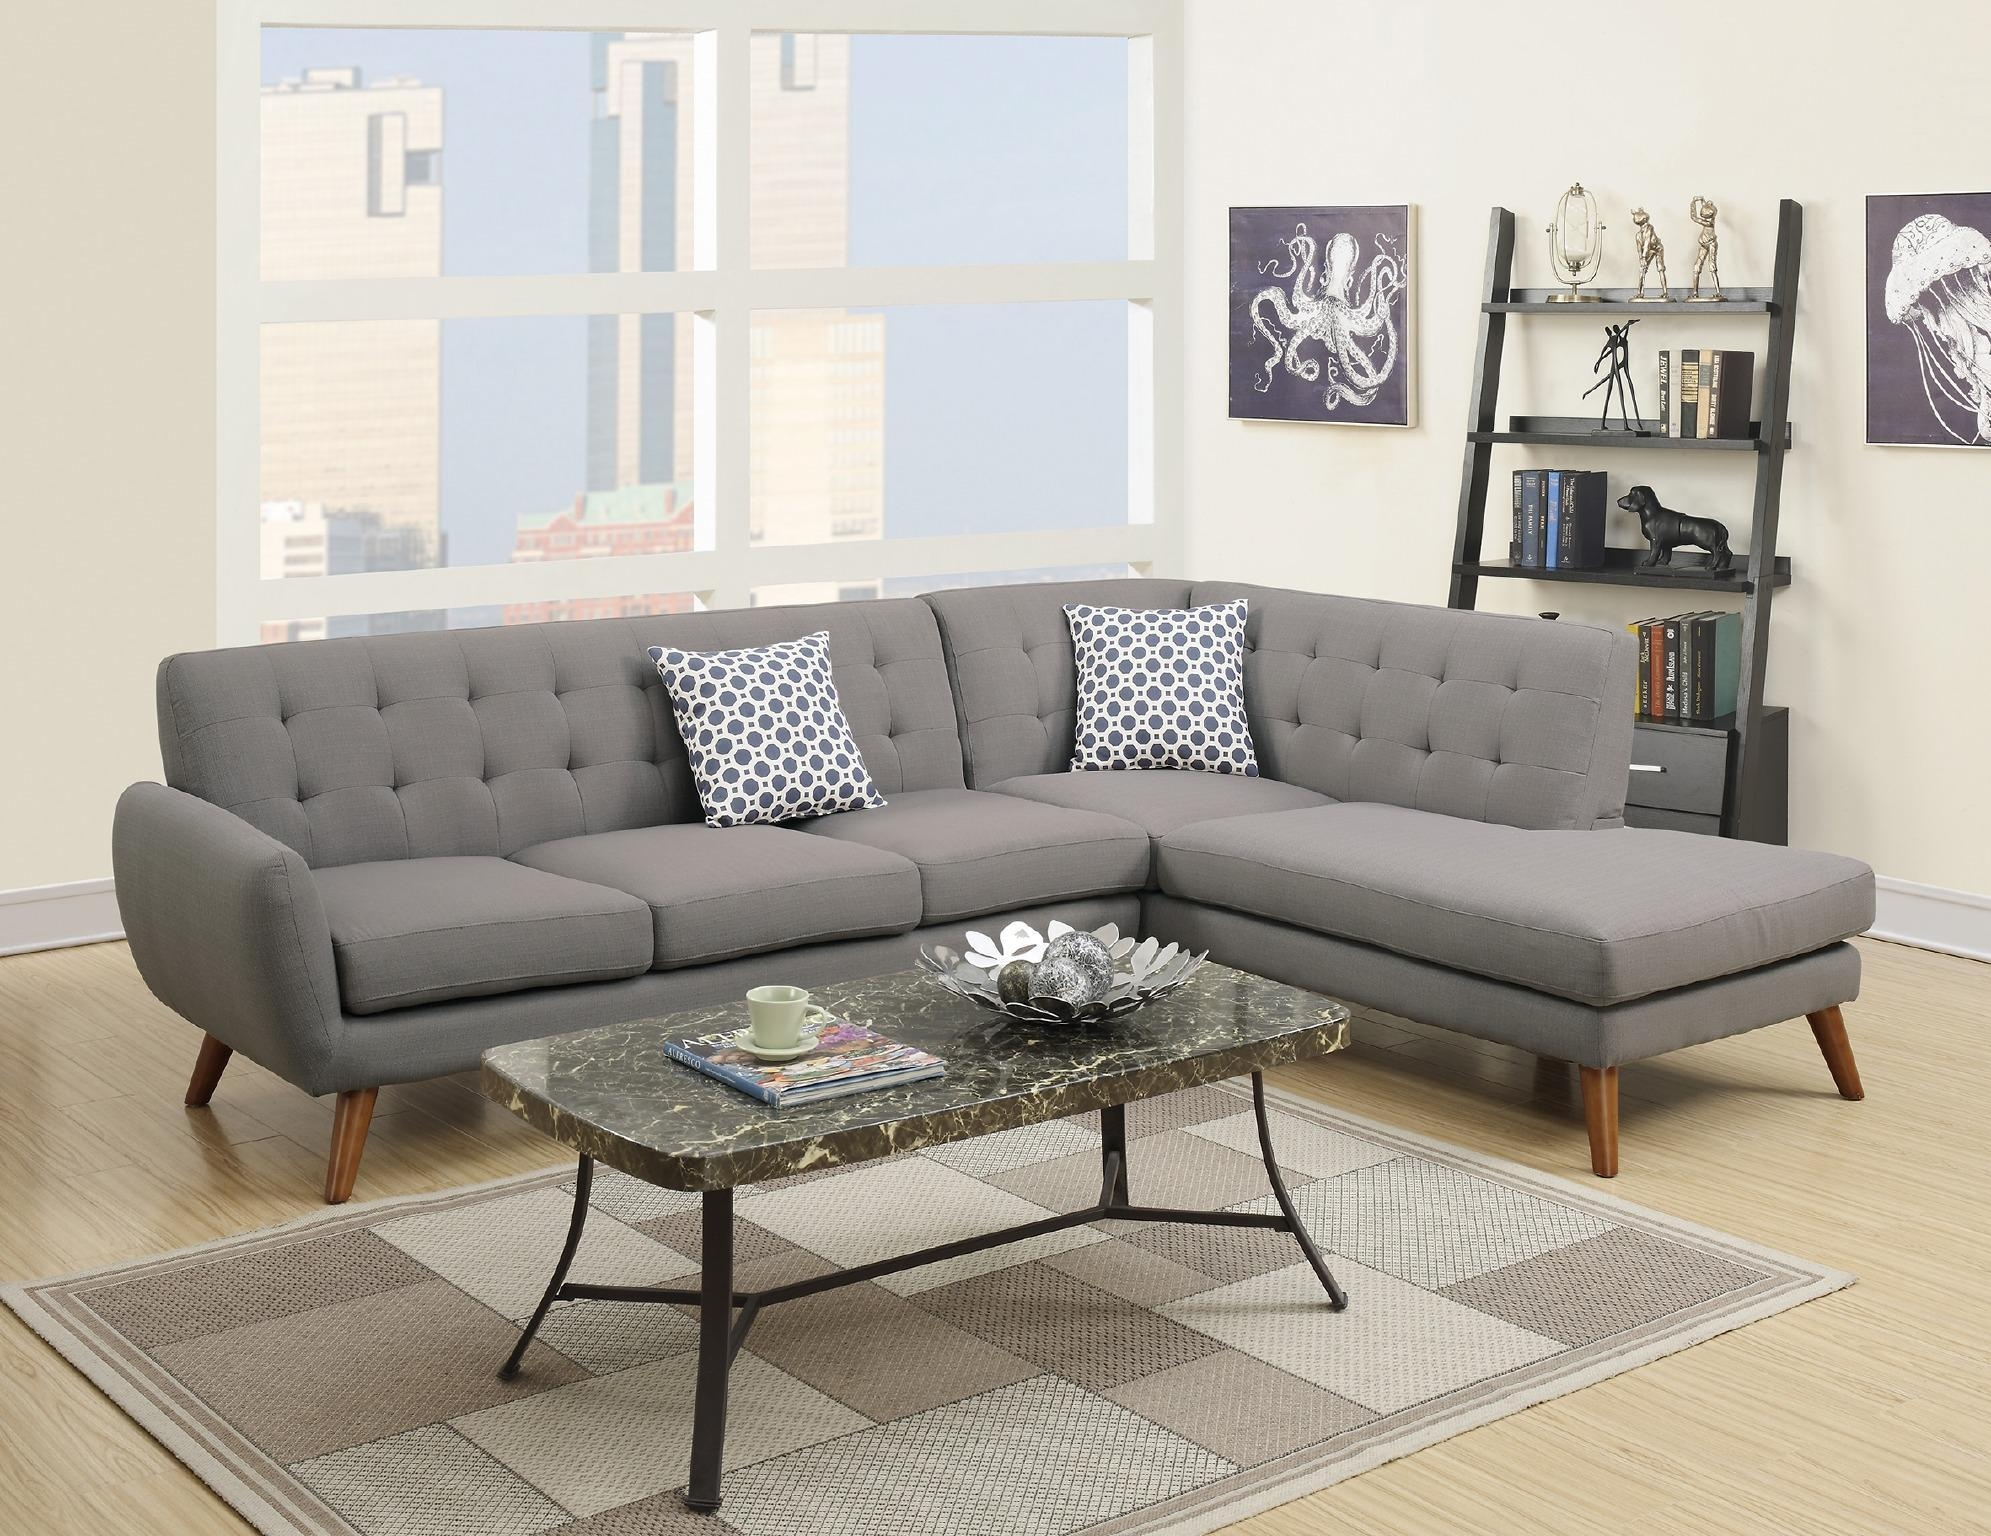 Retro Couch 20 Inspirations Retro Sectional Couch Sofa Ideas